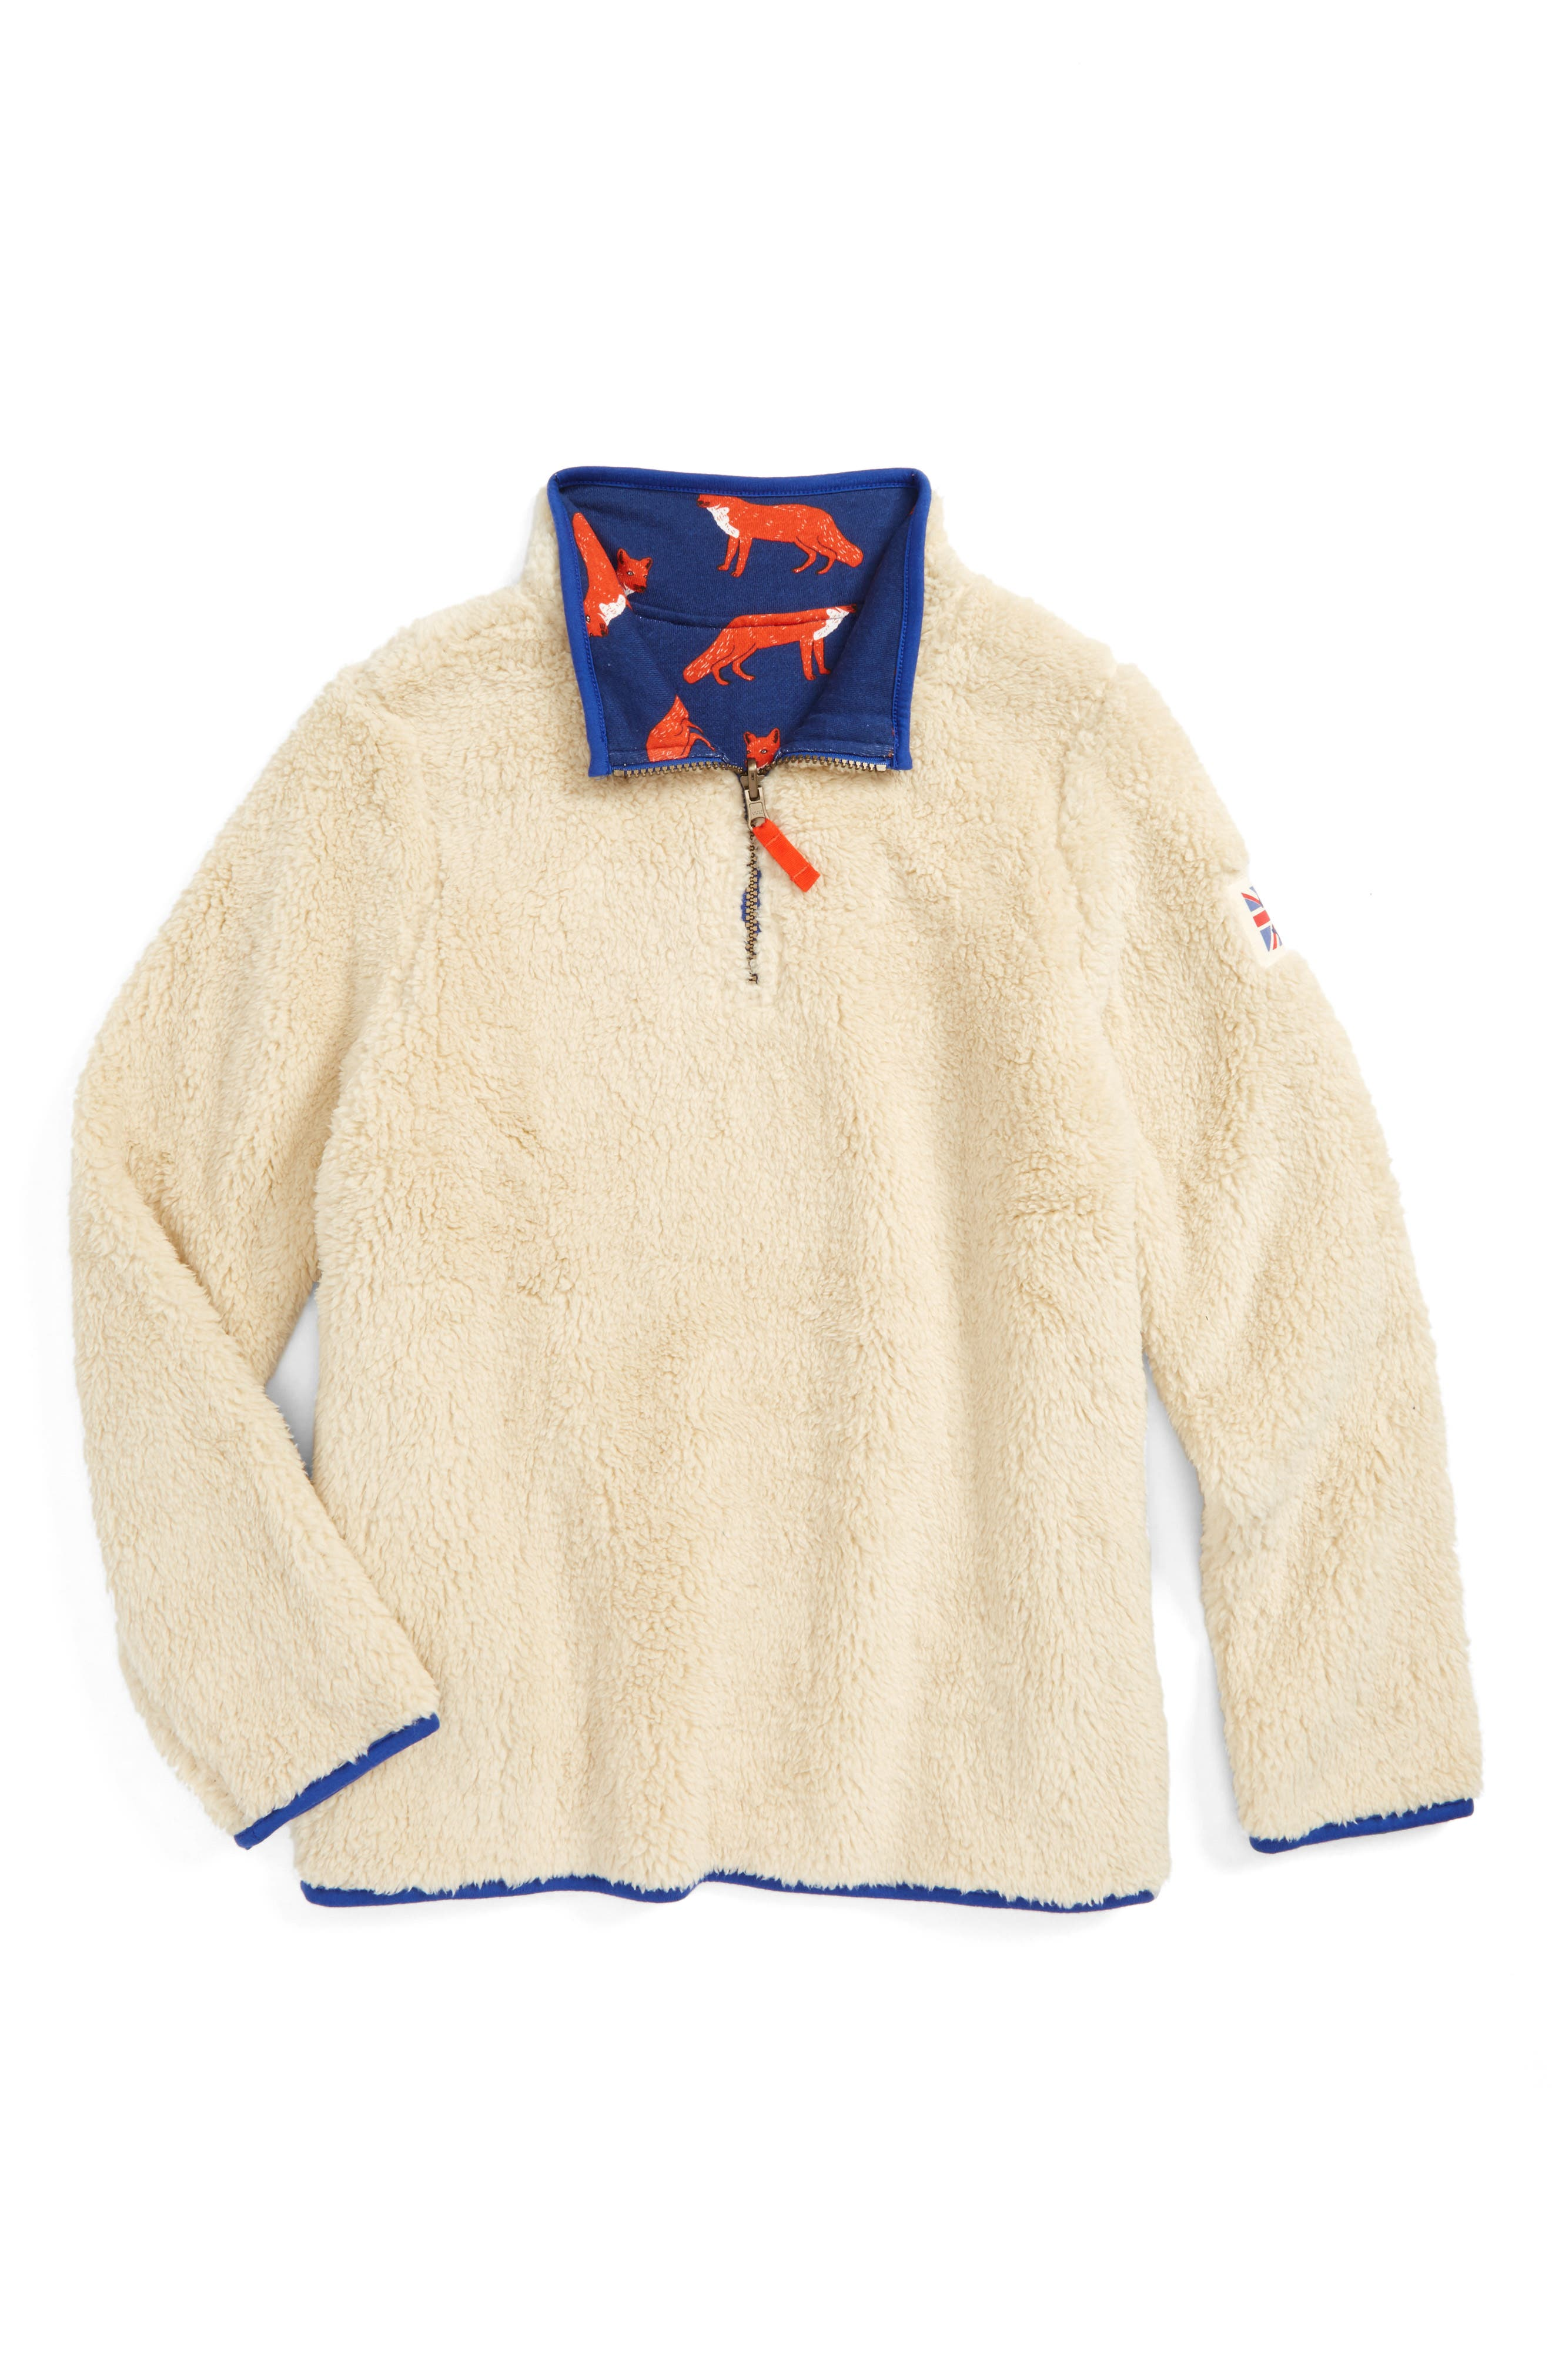 Mini Boden Reversible Quarter Zip Sweatshirt (Toddler Boys, Little Boys & Big Boys)